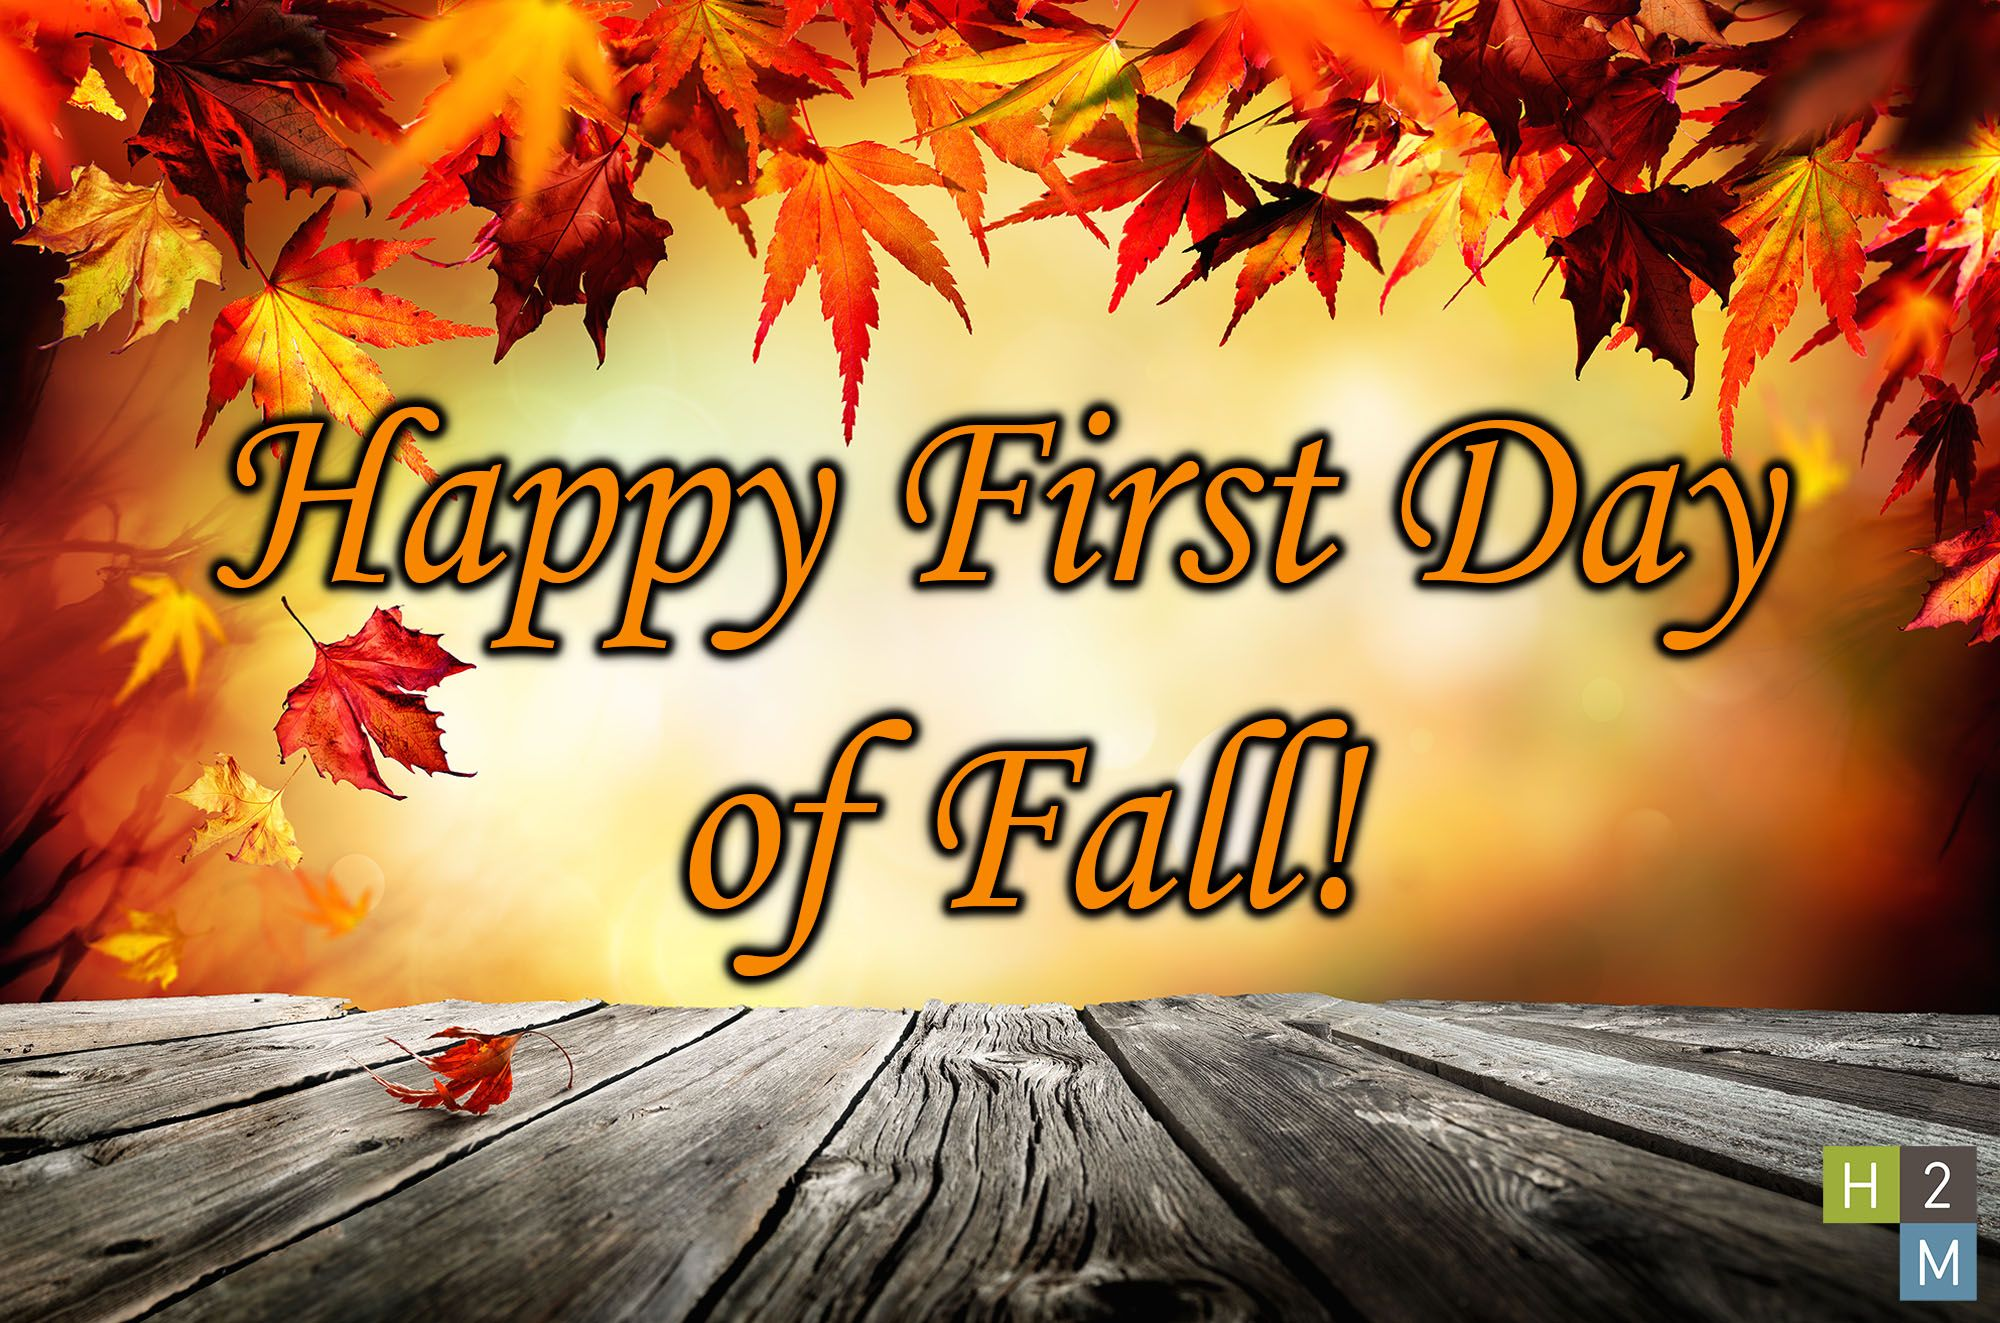 H2M Wishes Everyone A Happy First Day Of Fall! Have A Wonderful Weekend! #